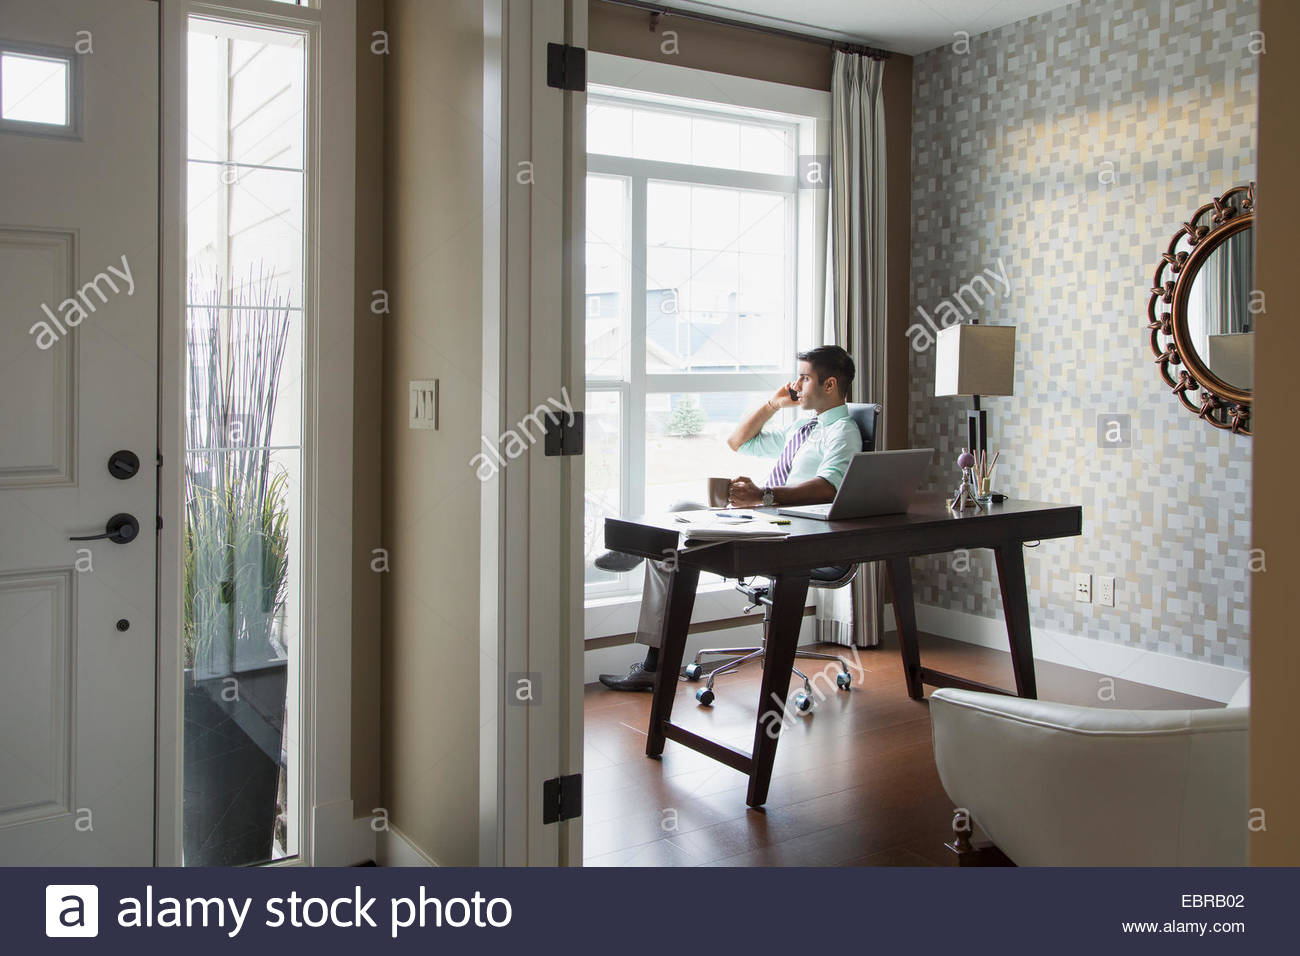 Man talking on cell phone in home office Stock Photo